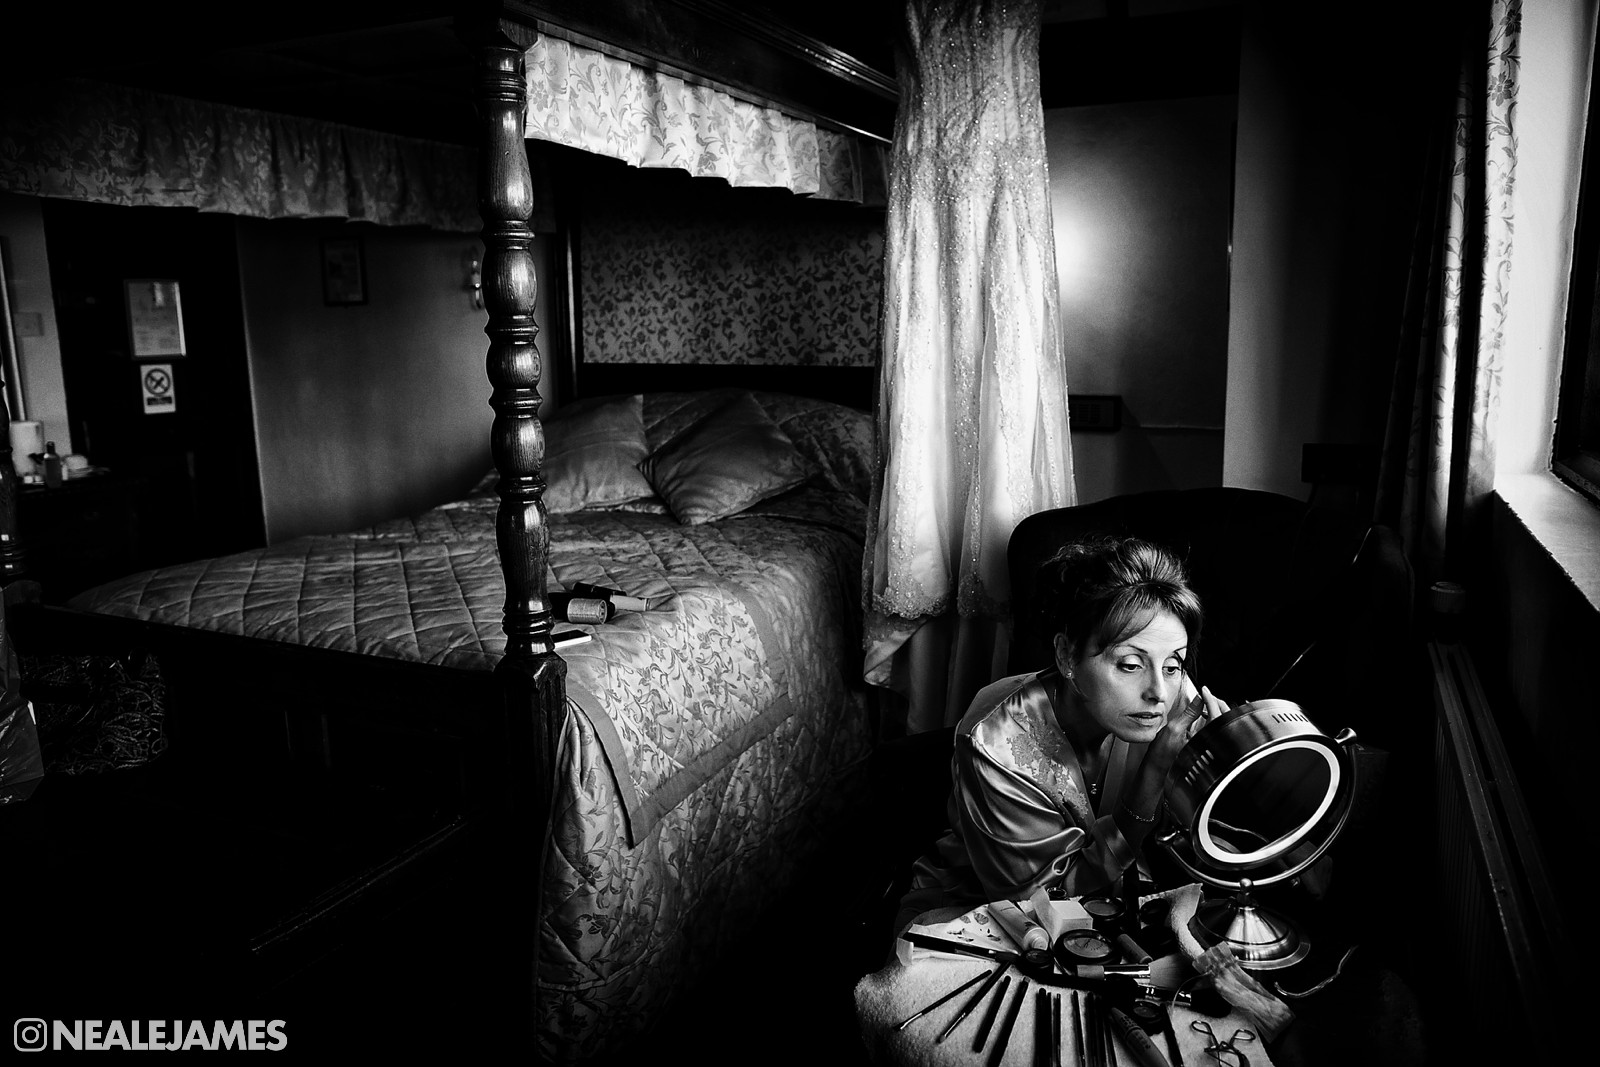 A black and white image of a bride applying makeup, illuminated by window light only